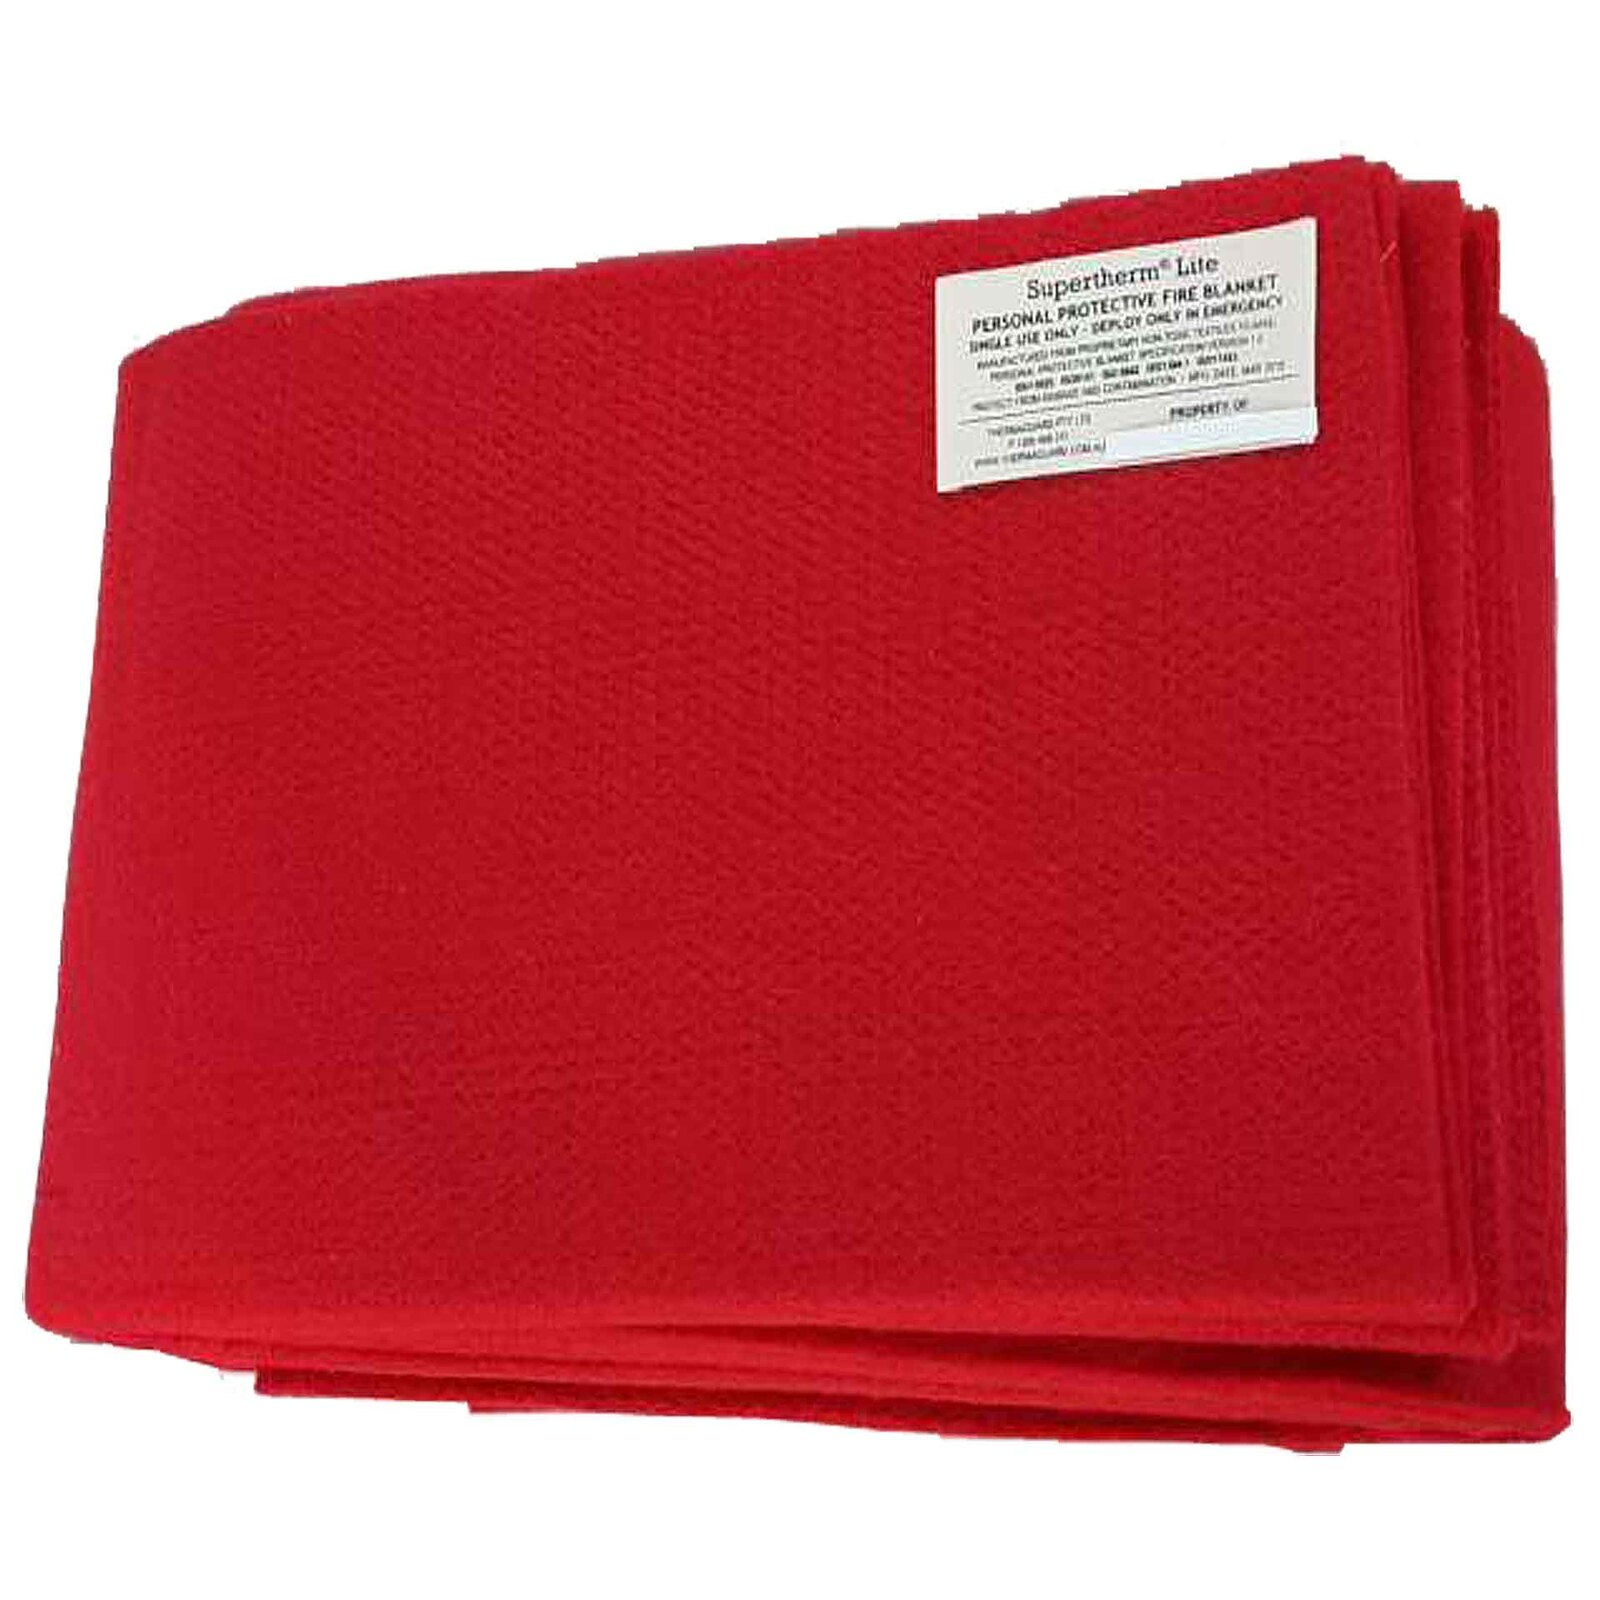 Supertherm® Lite Personal Fire Blanket